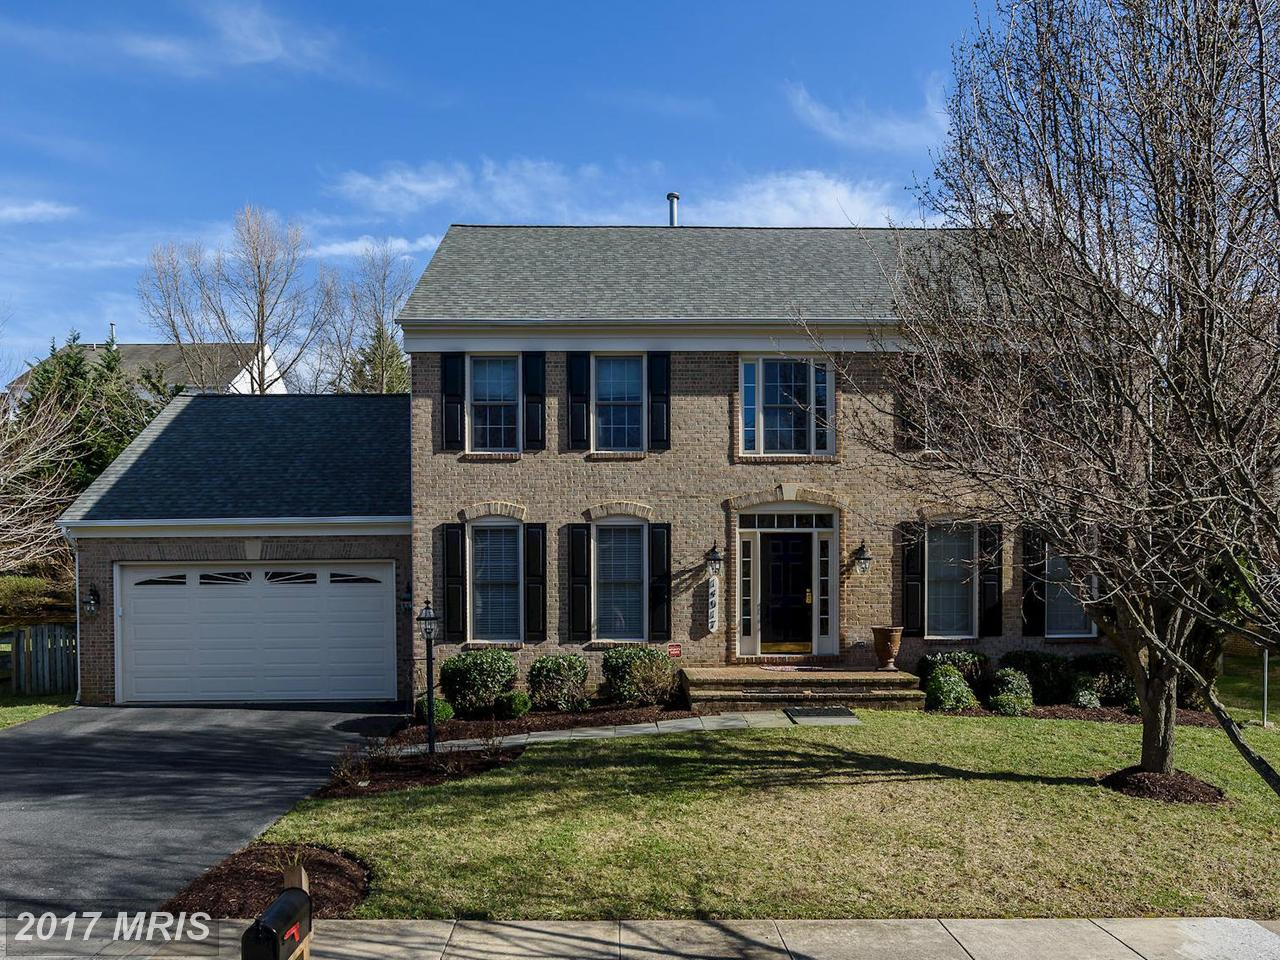 Single Family Home for Sale at Colonial, Detached - ROCKVILLE, MD 14017 LOBLOLLY TER Rockville, Maryland,20850 United States